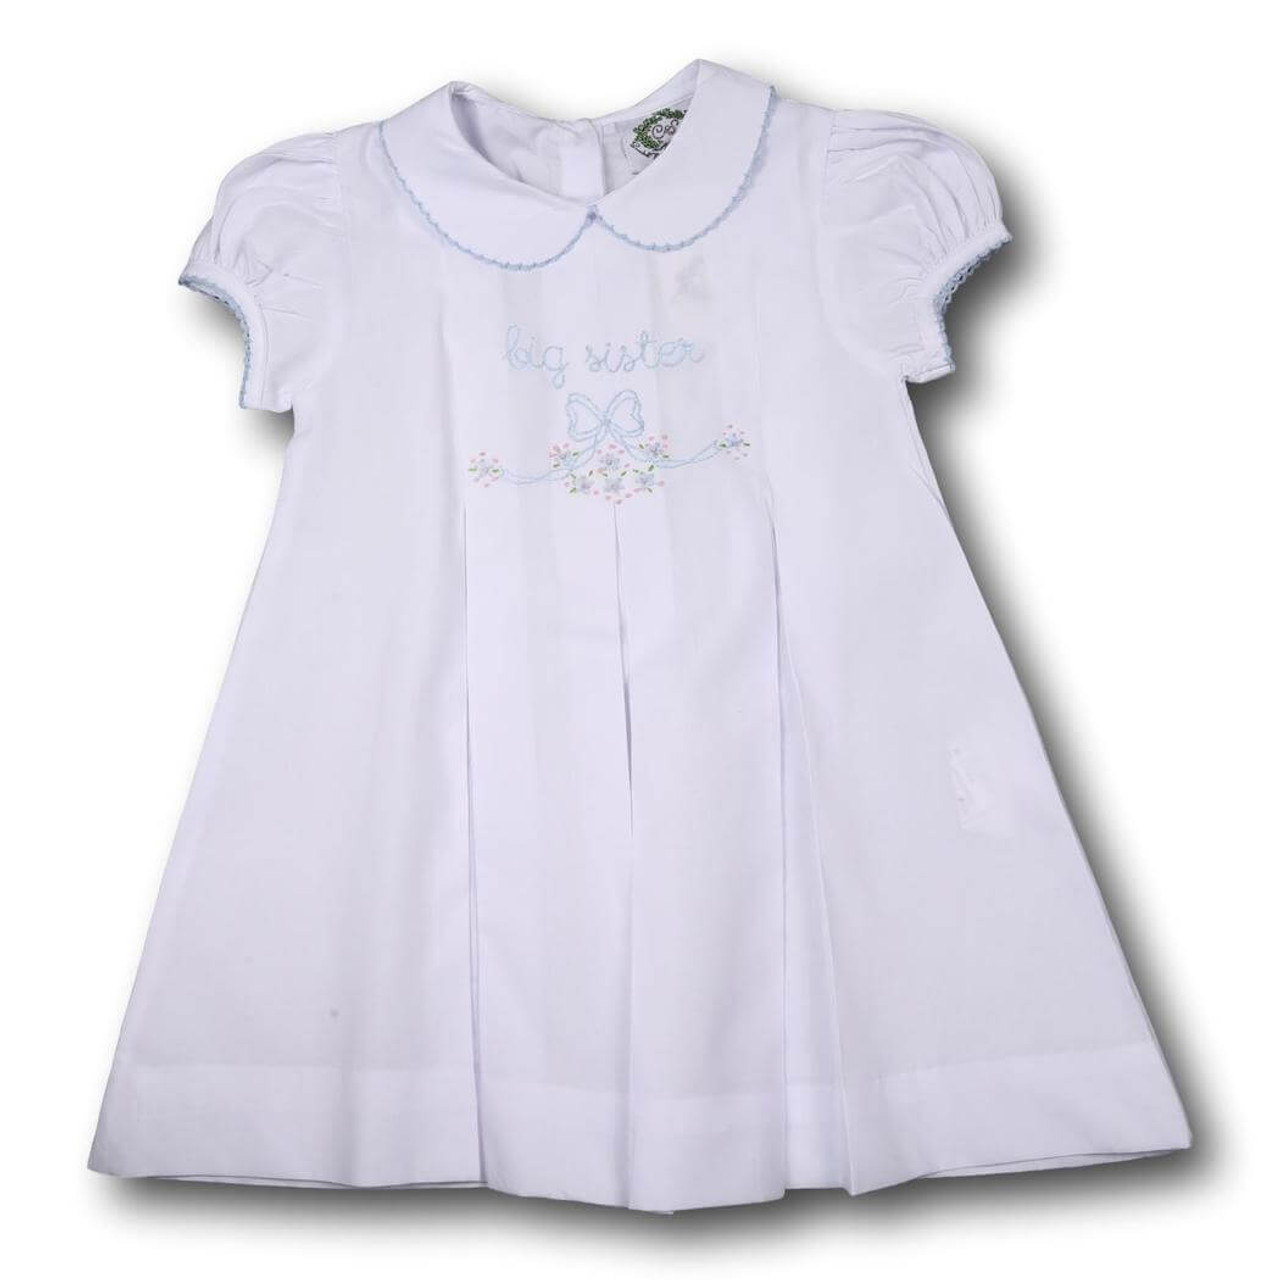 c504518e88 Blue Hand Embroidery Big Sister Dress - Cecil and Lou